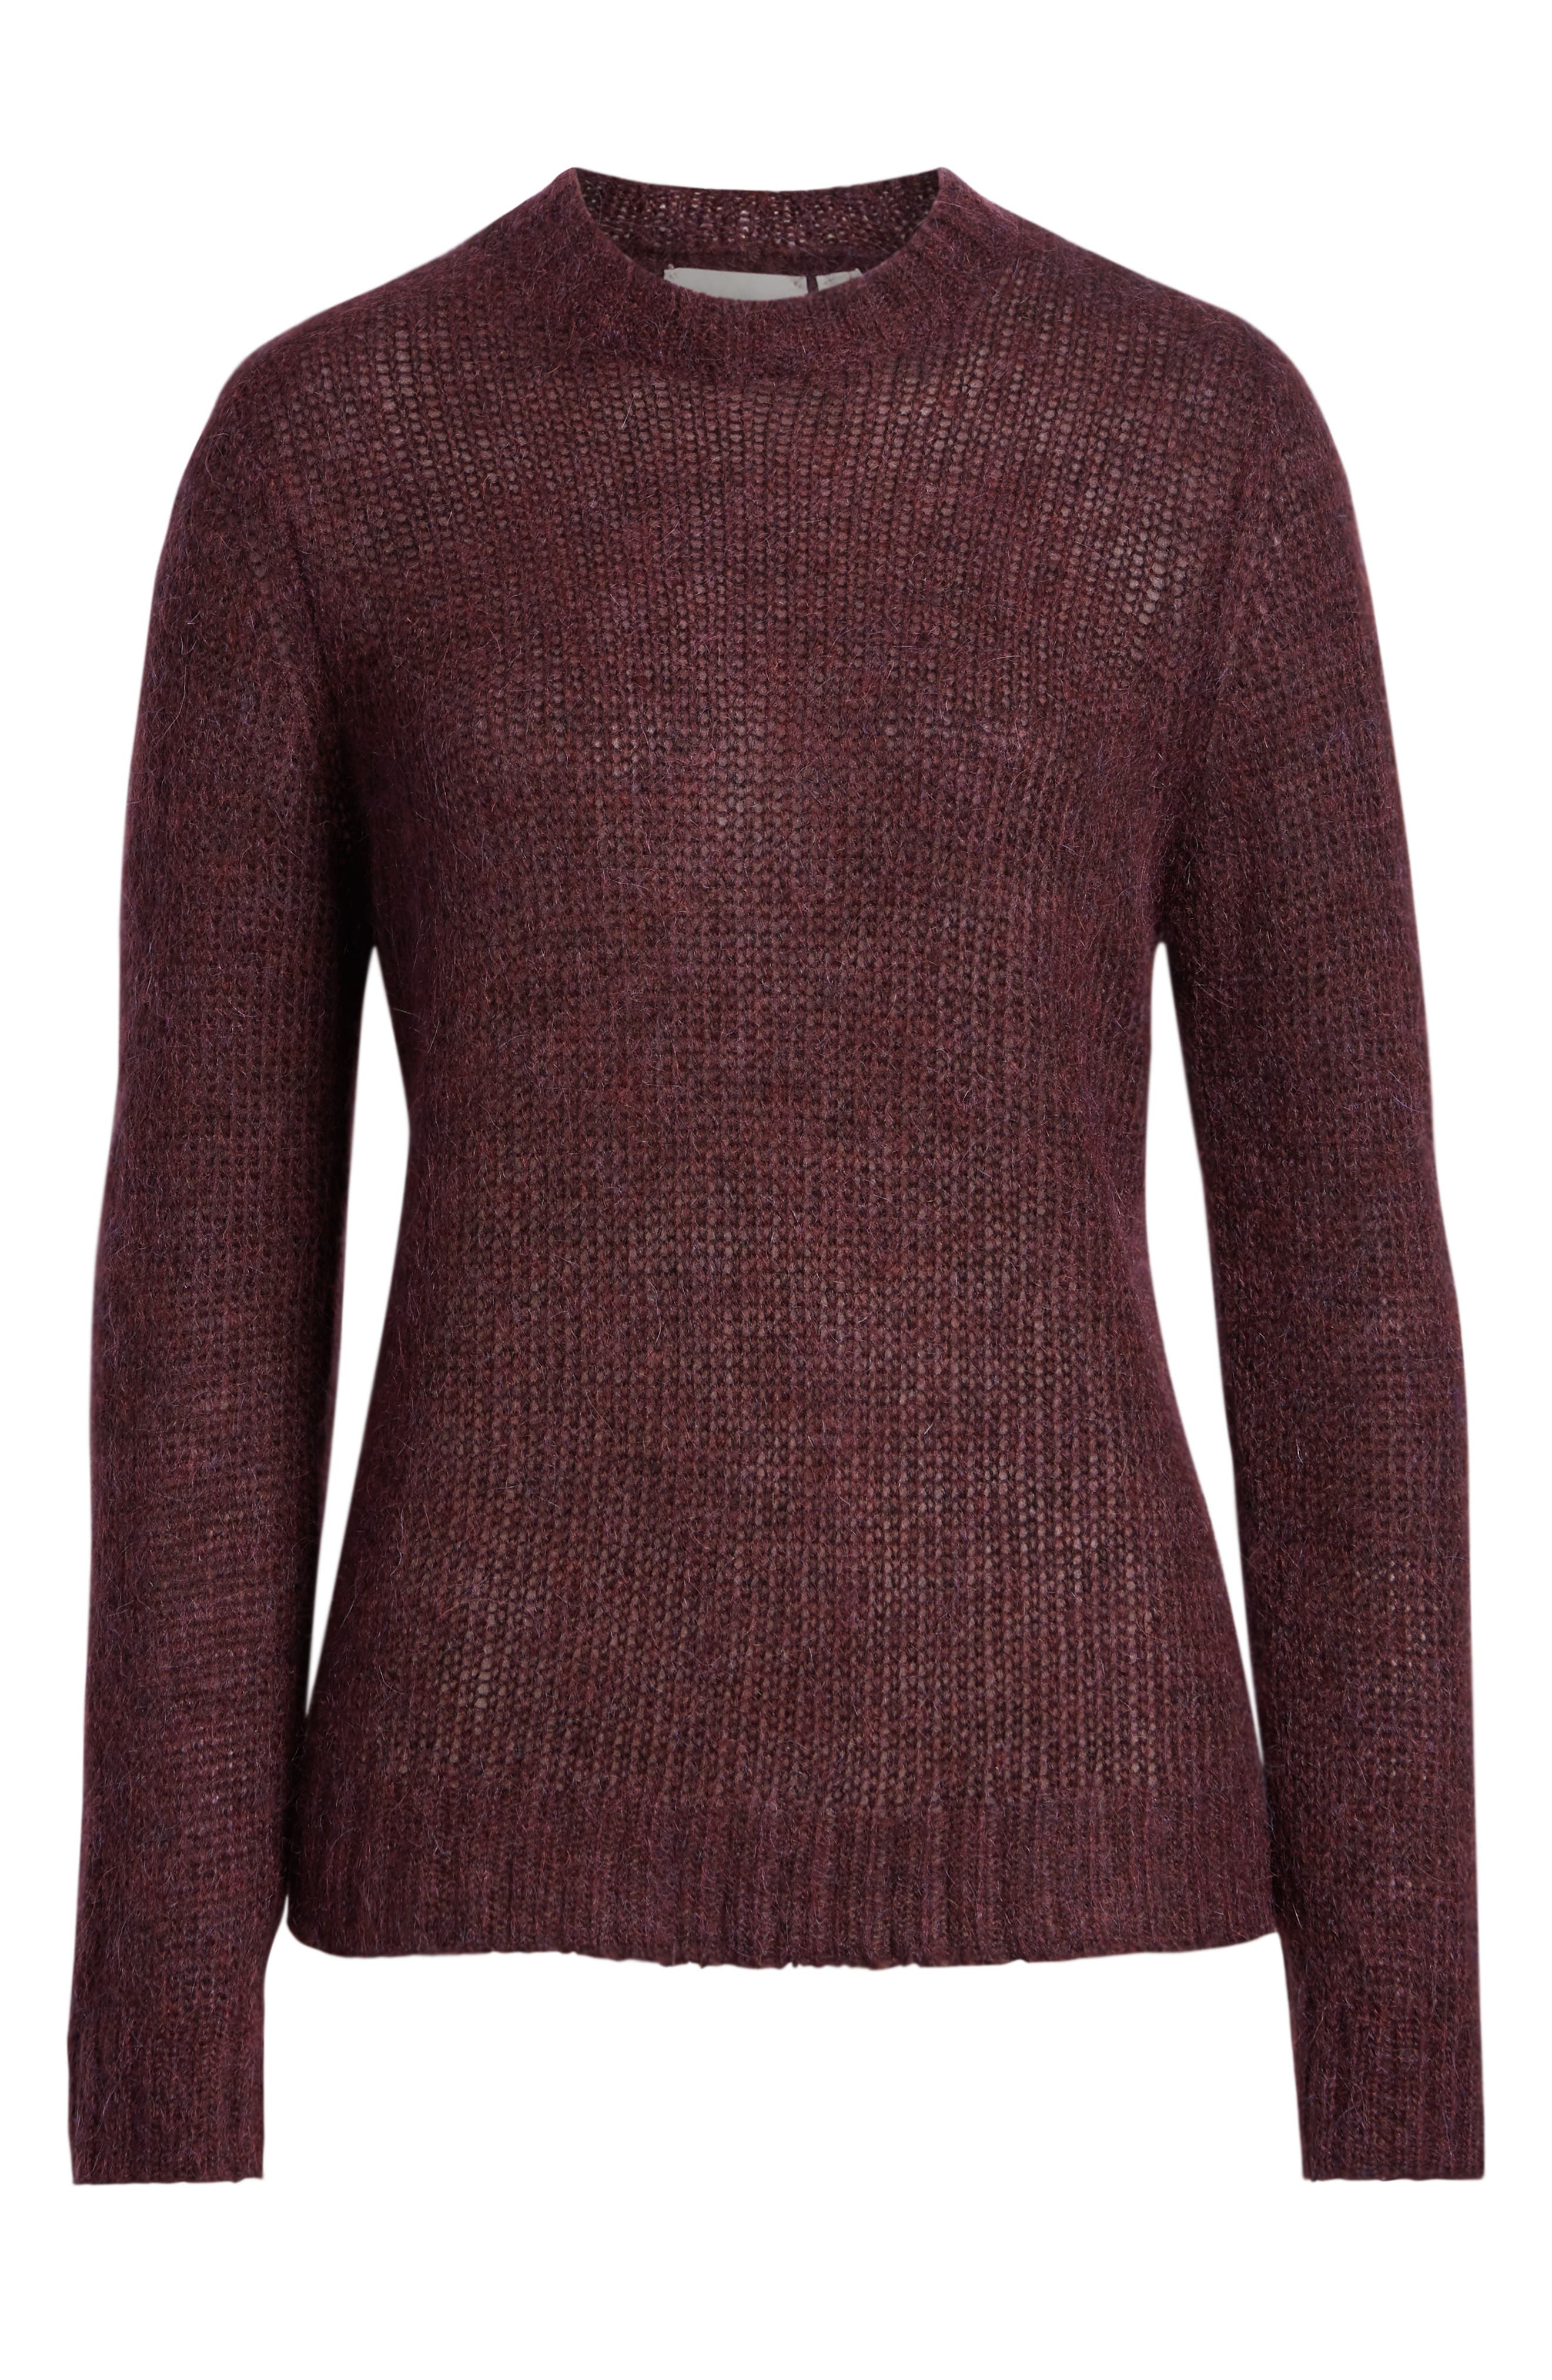 Ansley Crewneck Sweater,                             Alternate thumbnail 6, color,                             RICH CARMINE